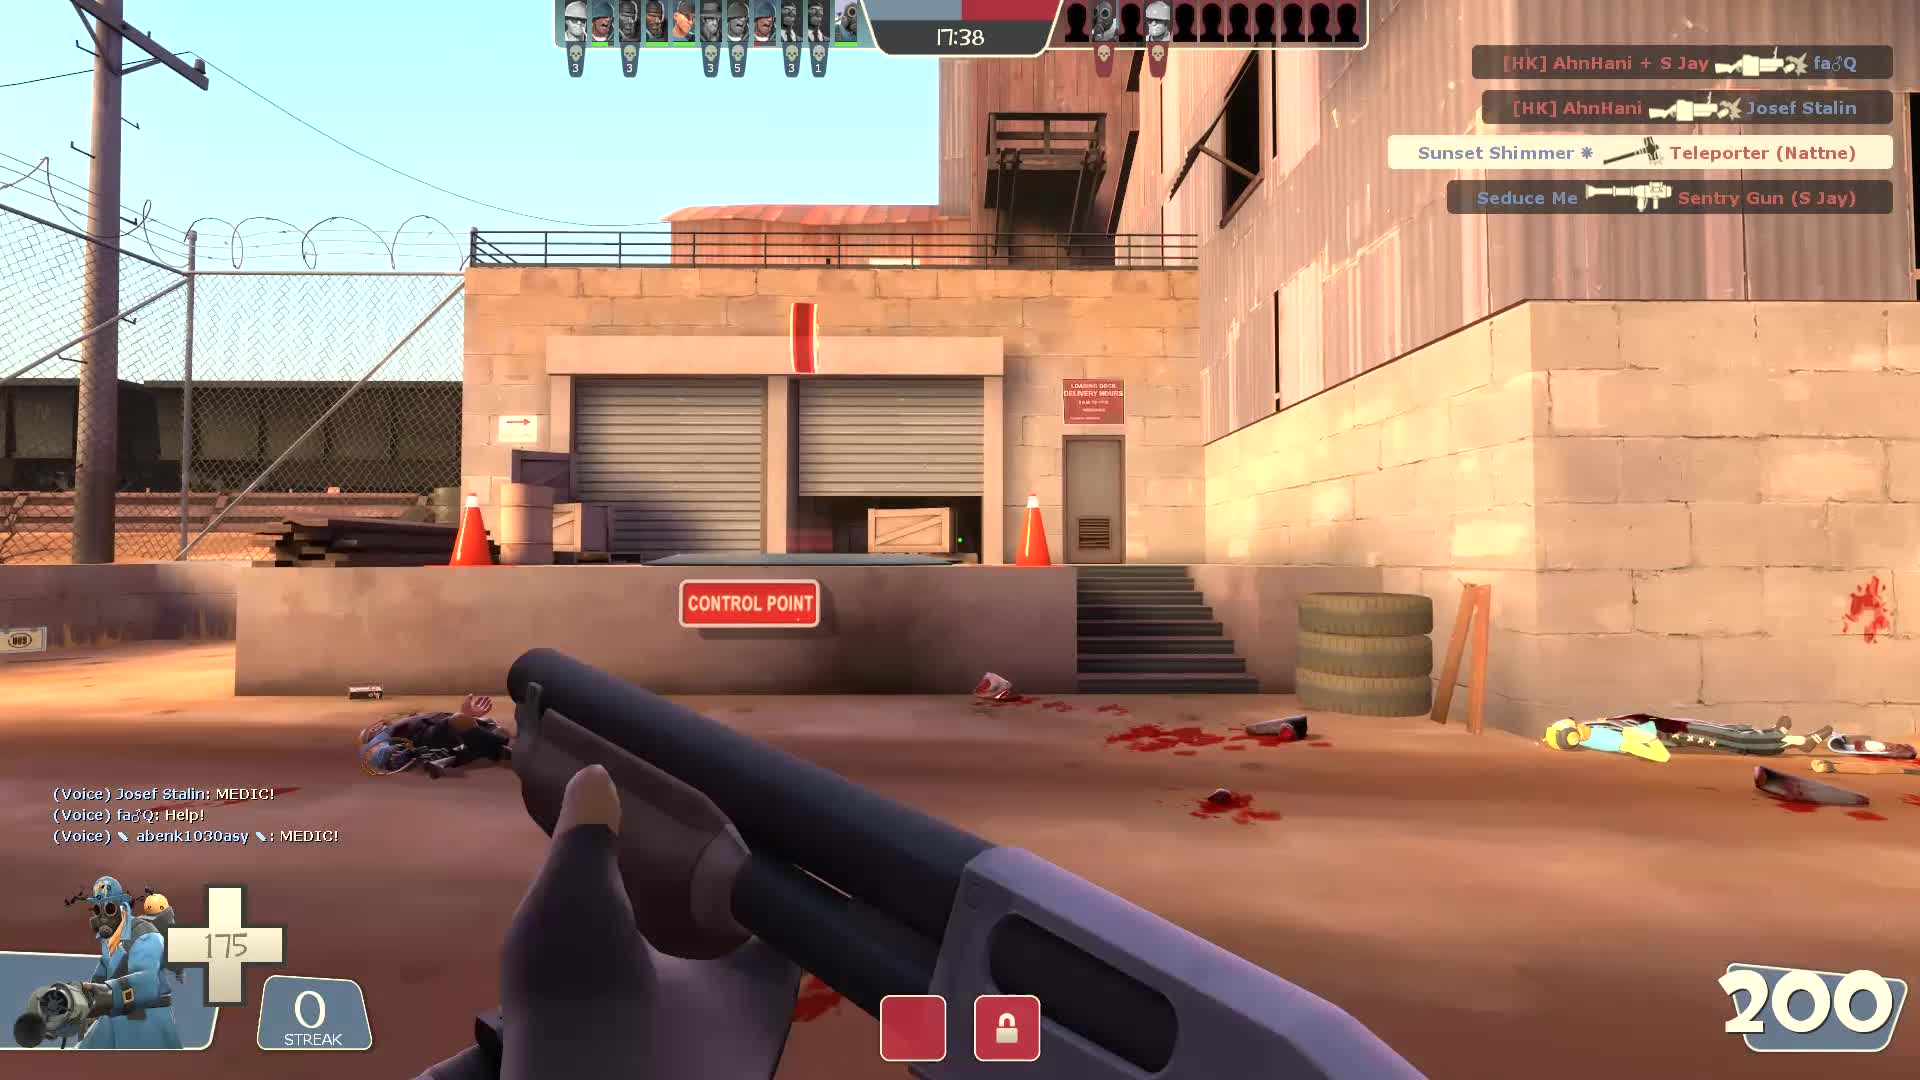 tf2, Successfully disarming a cone sticky trap GIFs